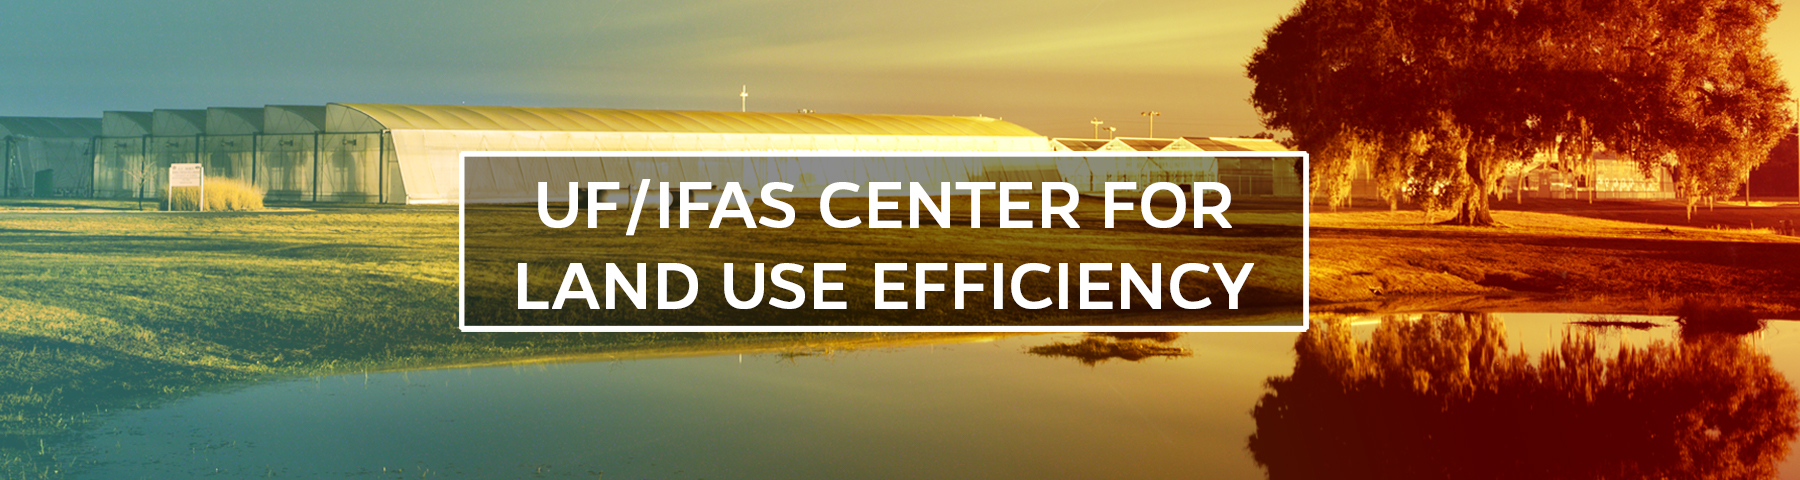 Center for Land Use Efficiency